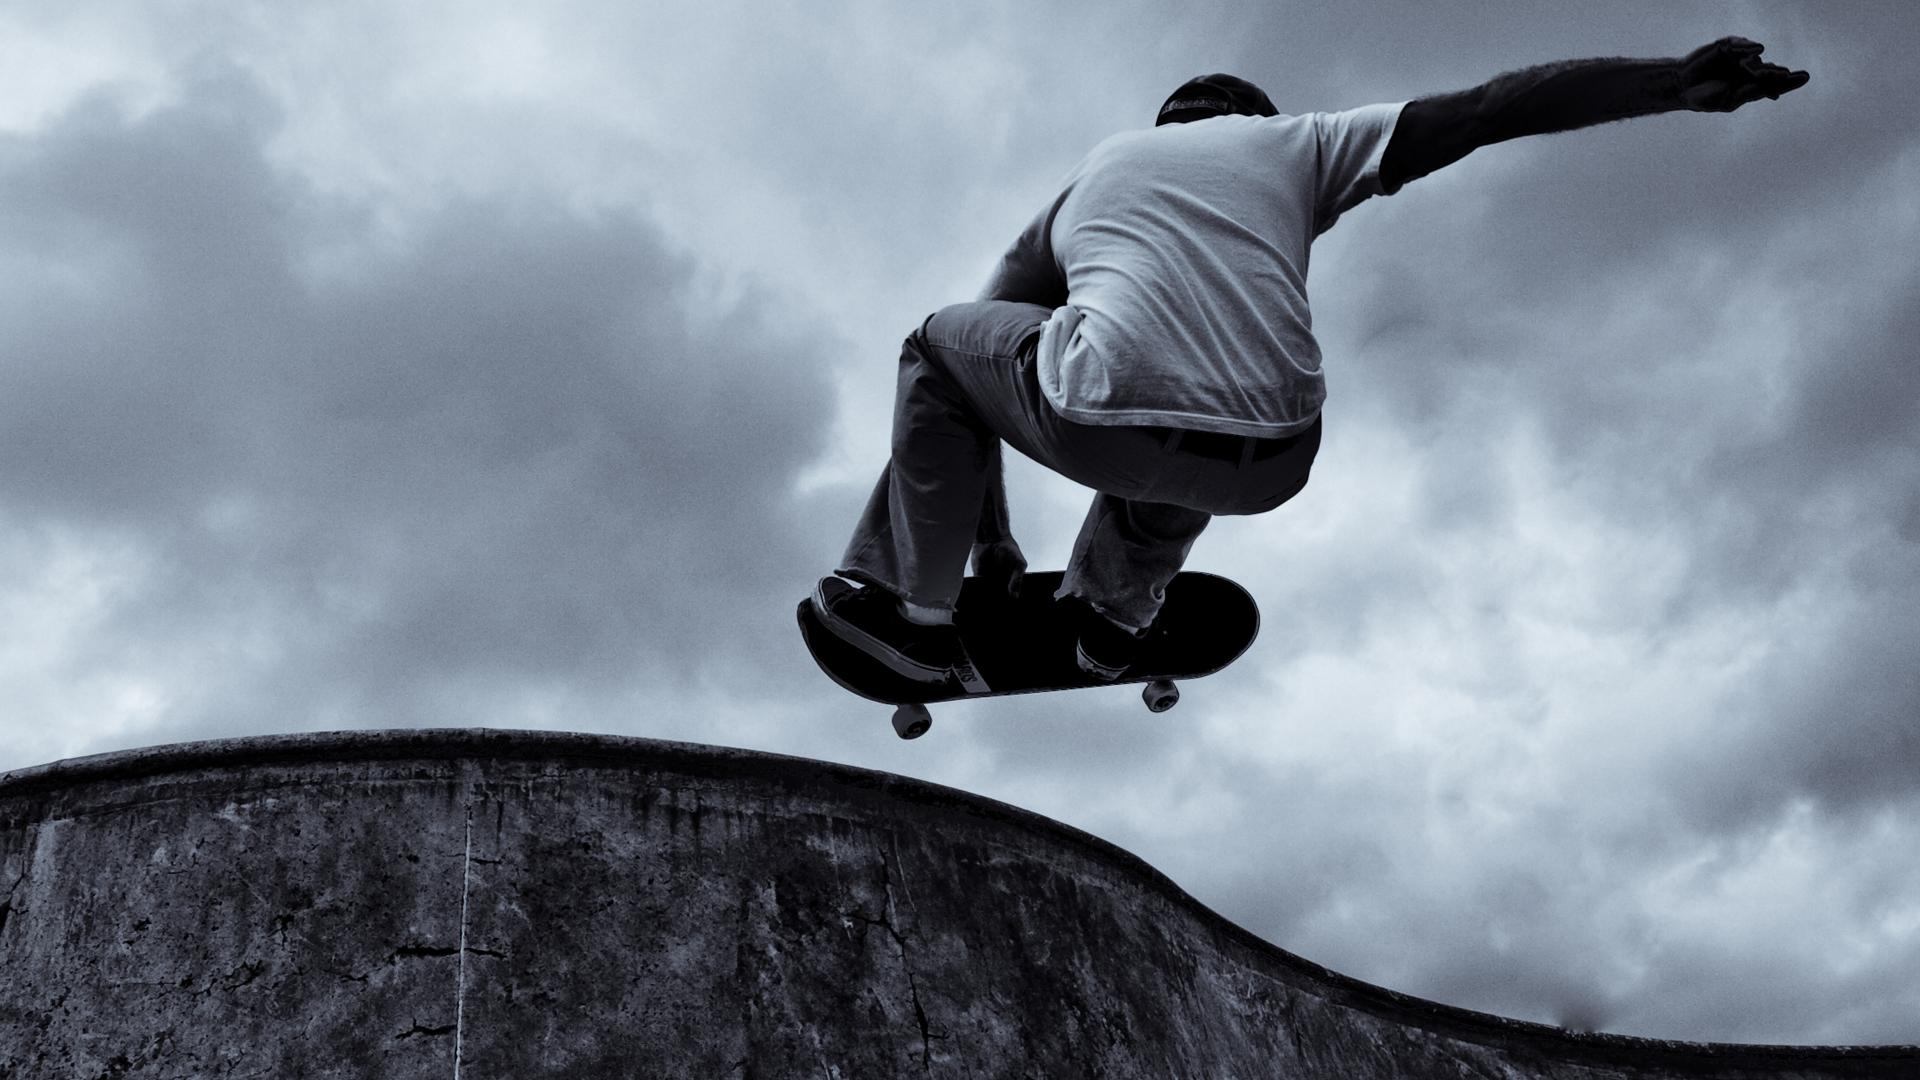 wallpaper.wiki-Skateboard-hd-pictures-PIC-WPE007906